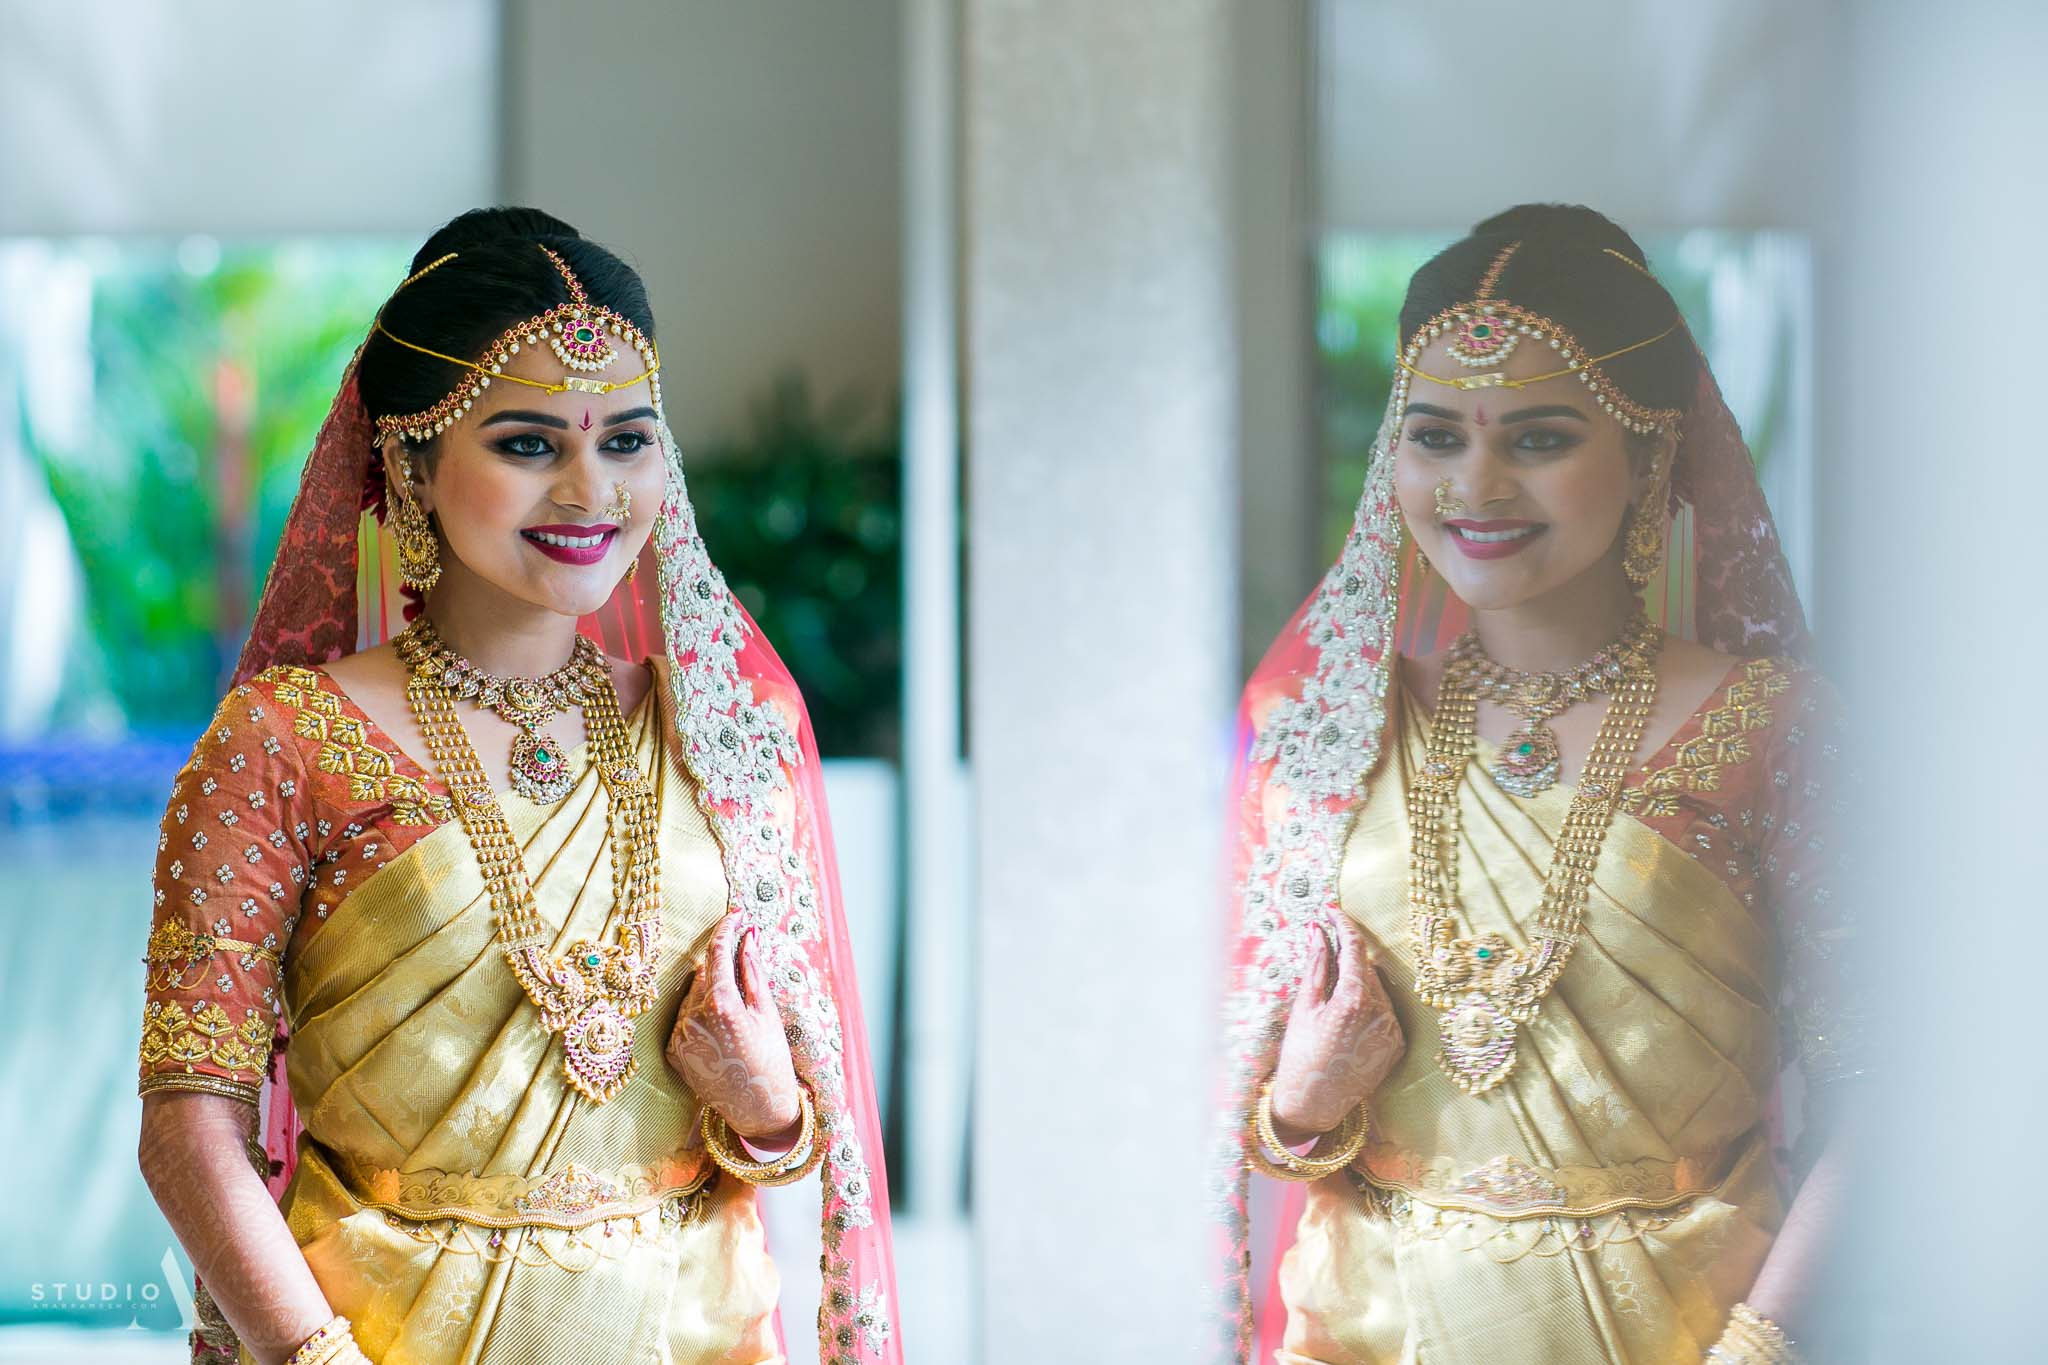 Destination-wedding-photographer-chennai-10